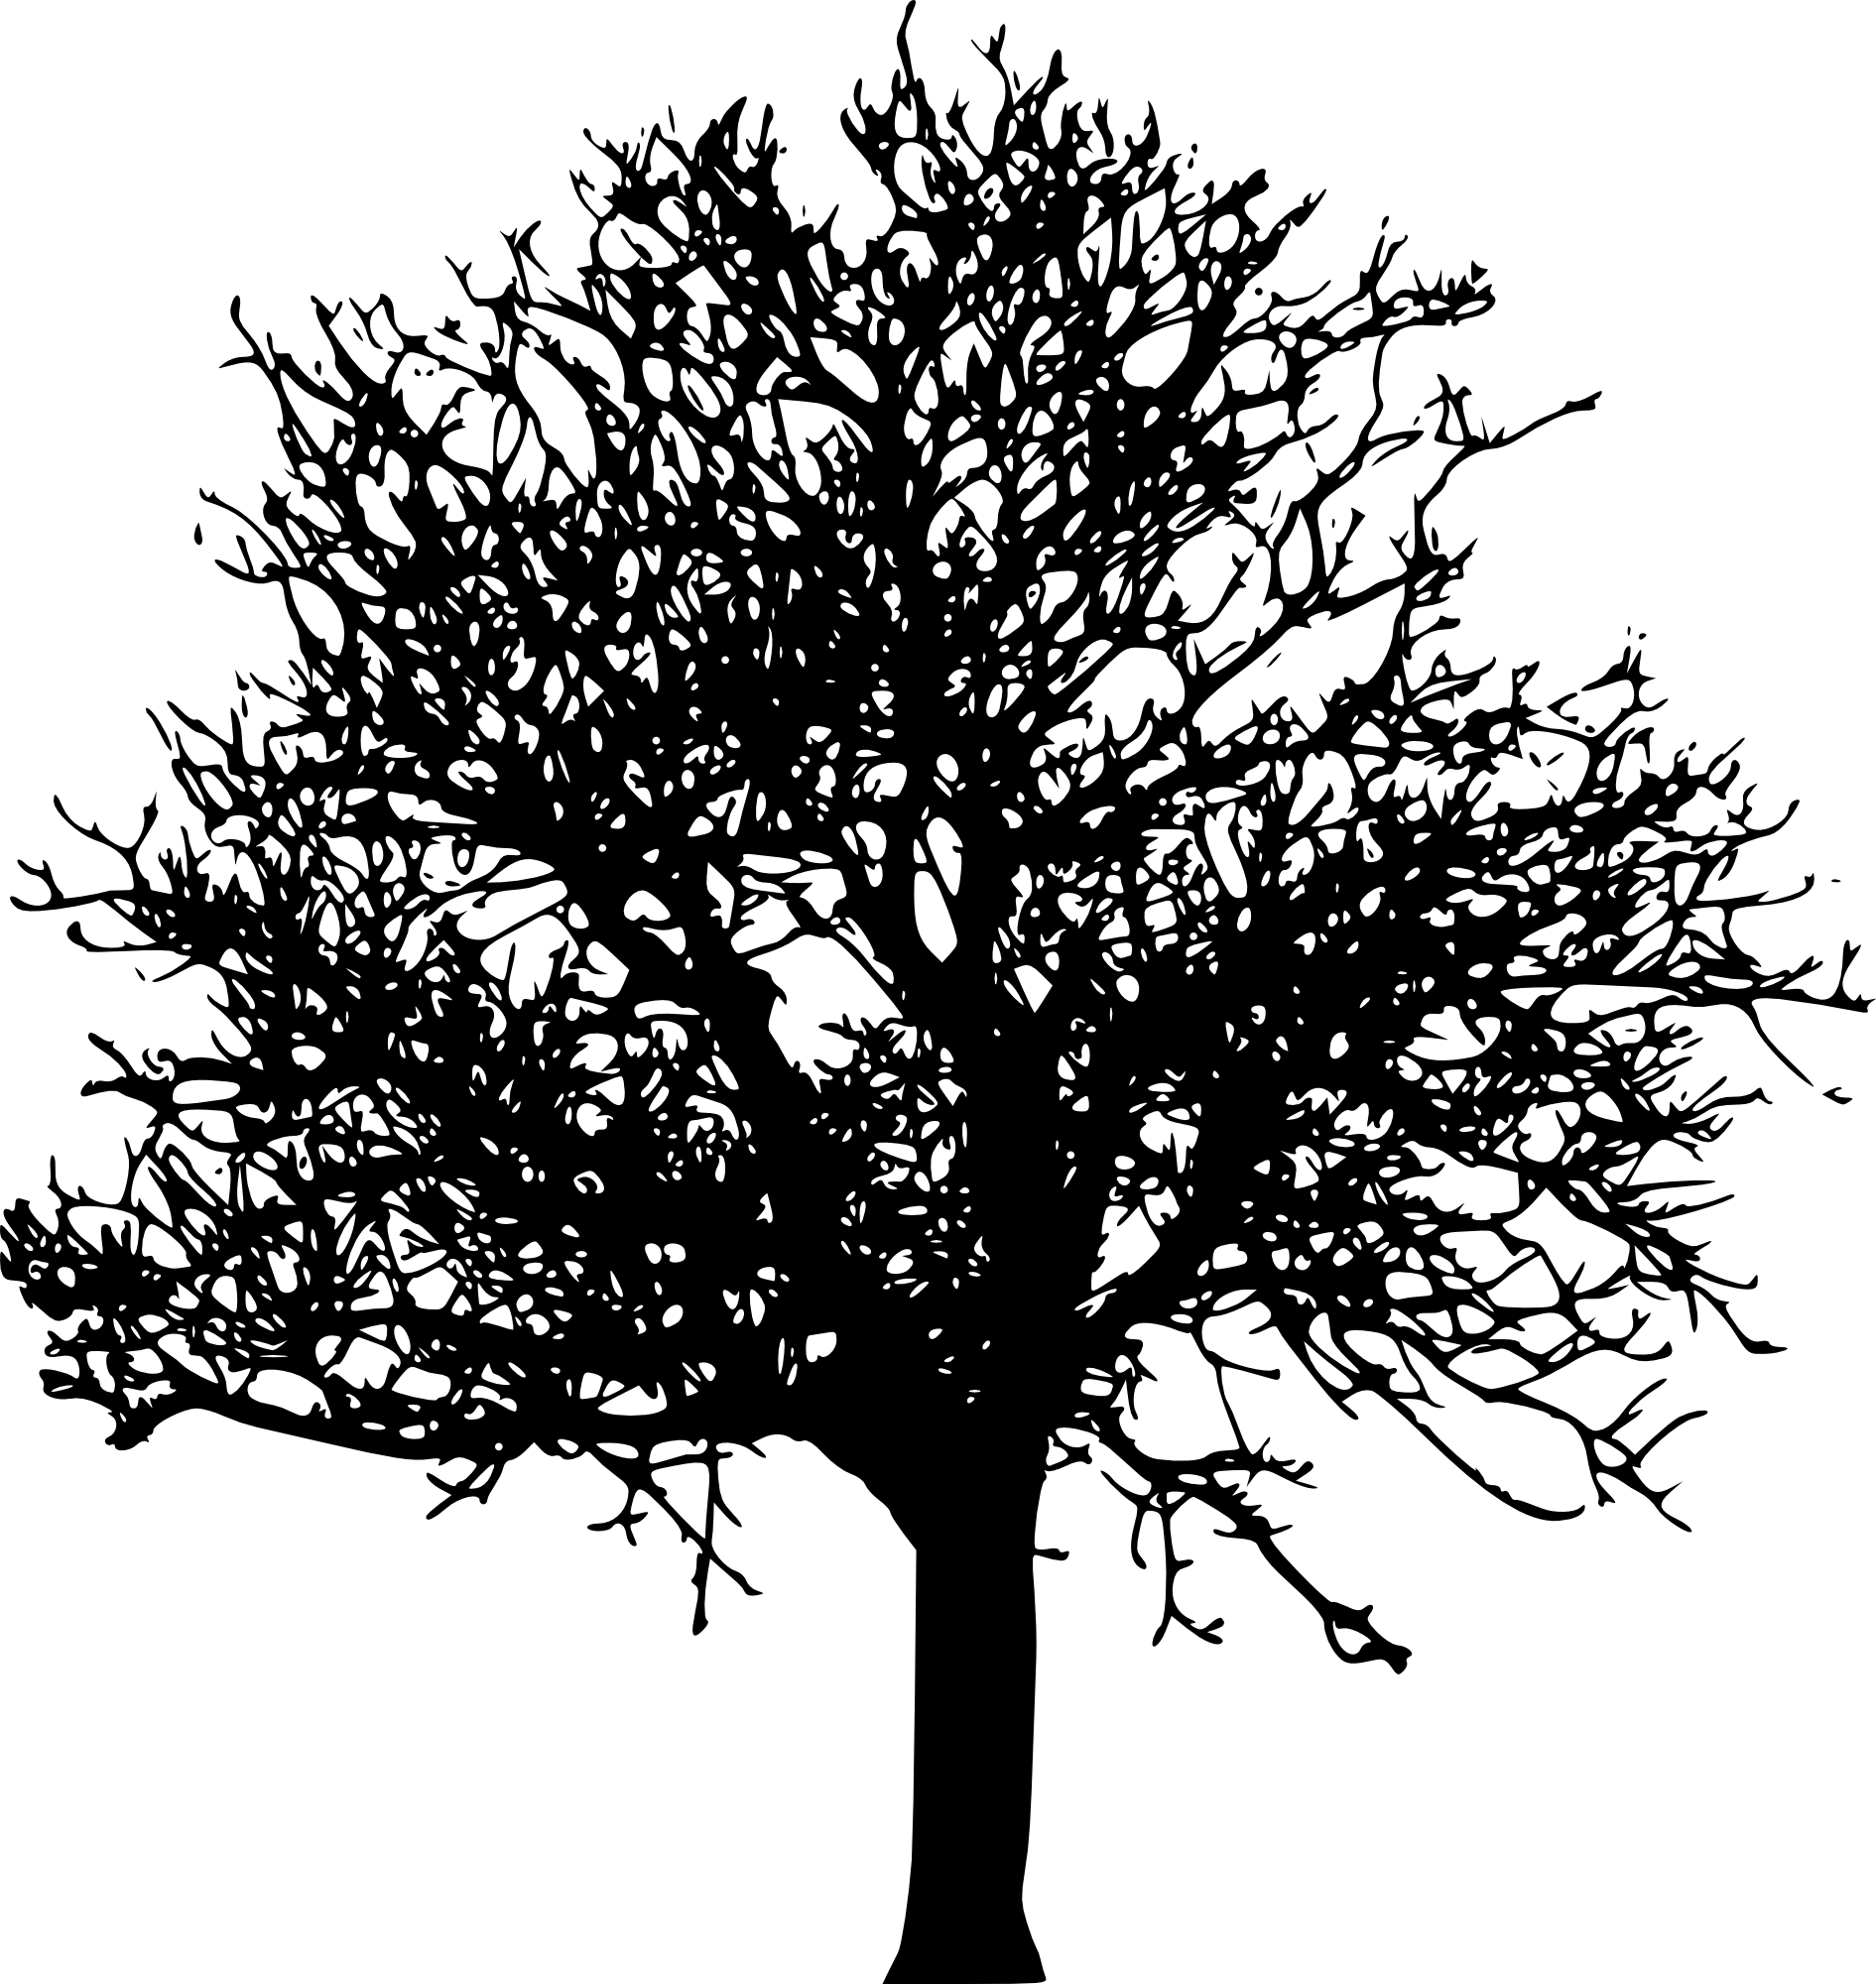 45 Tree Silhouettes PNG Transparent Background.